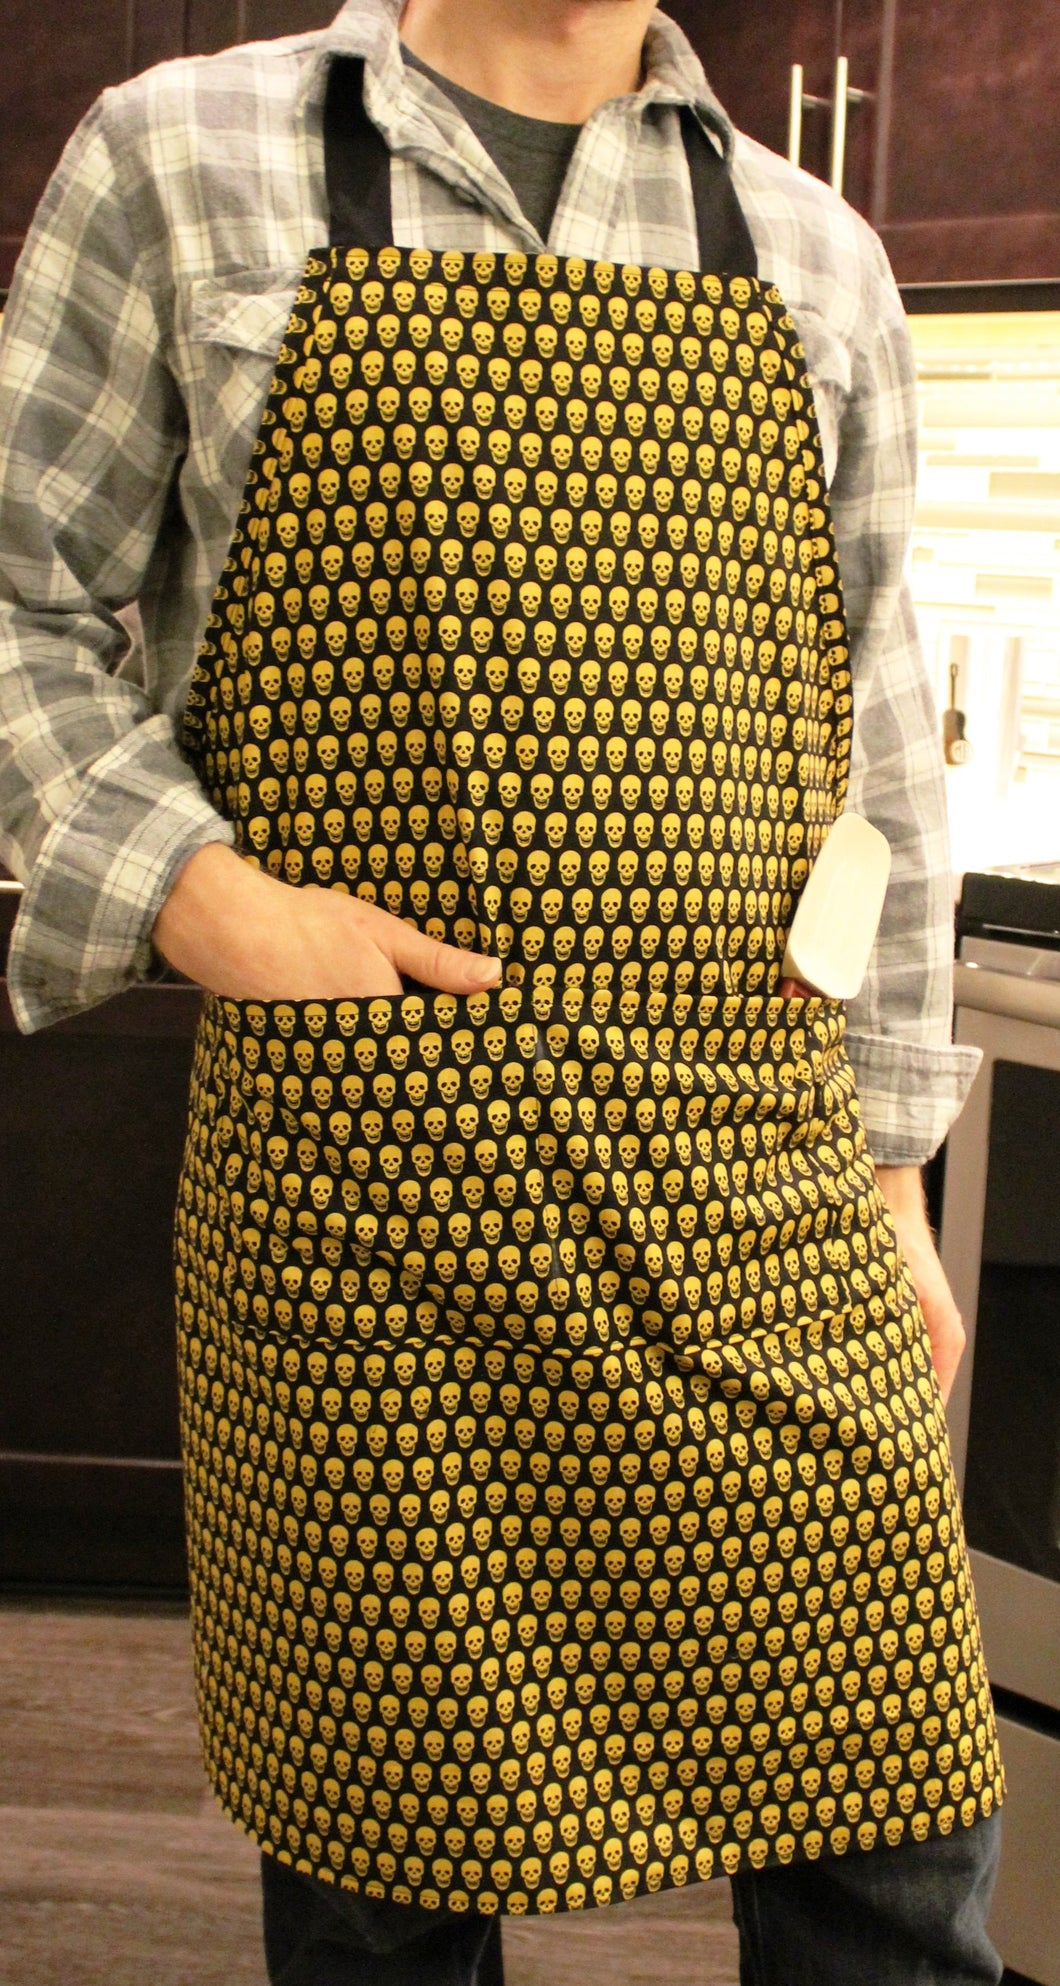 No-Nonsense Full Apron - Black with Yellow Skulls